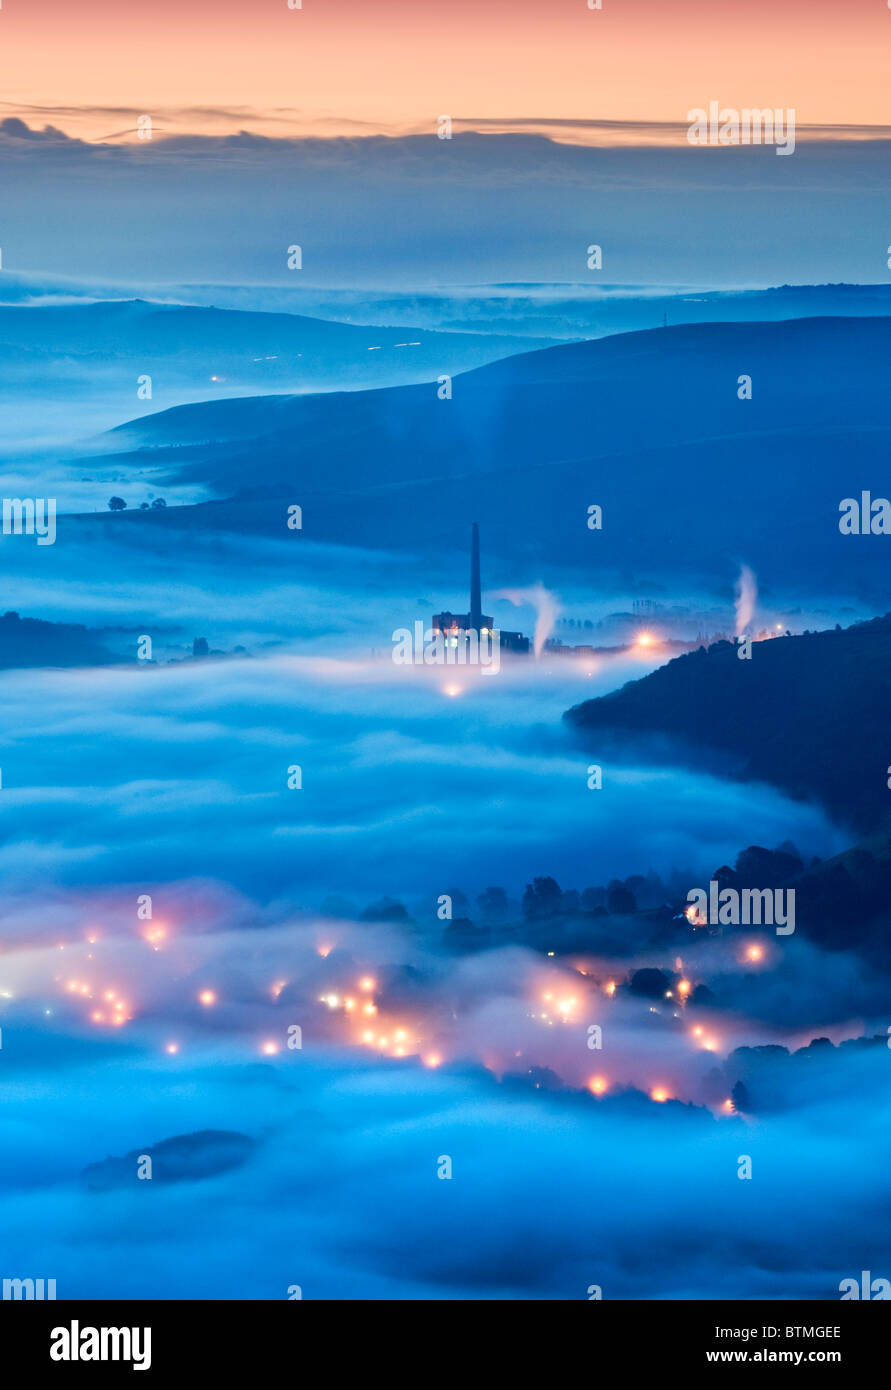 Las cementeras Lafarge y luces de Castleton en niebla, Hope Valley, Peak District National Park, Derbyshire, Inglaterra, Imagen De Stock